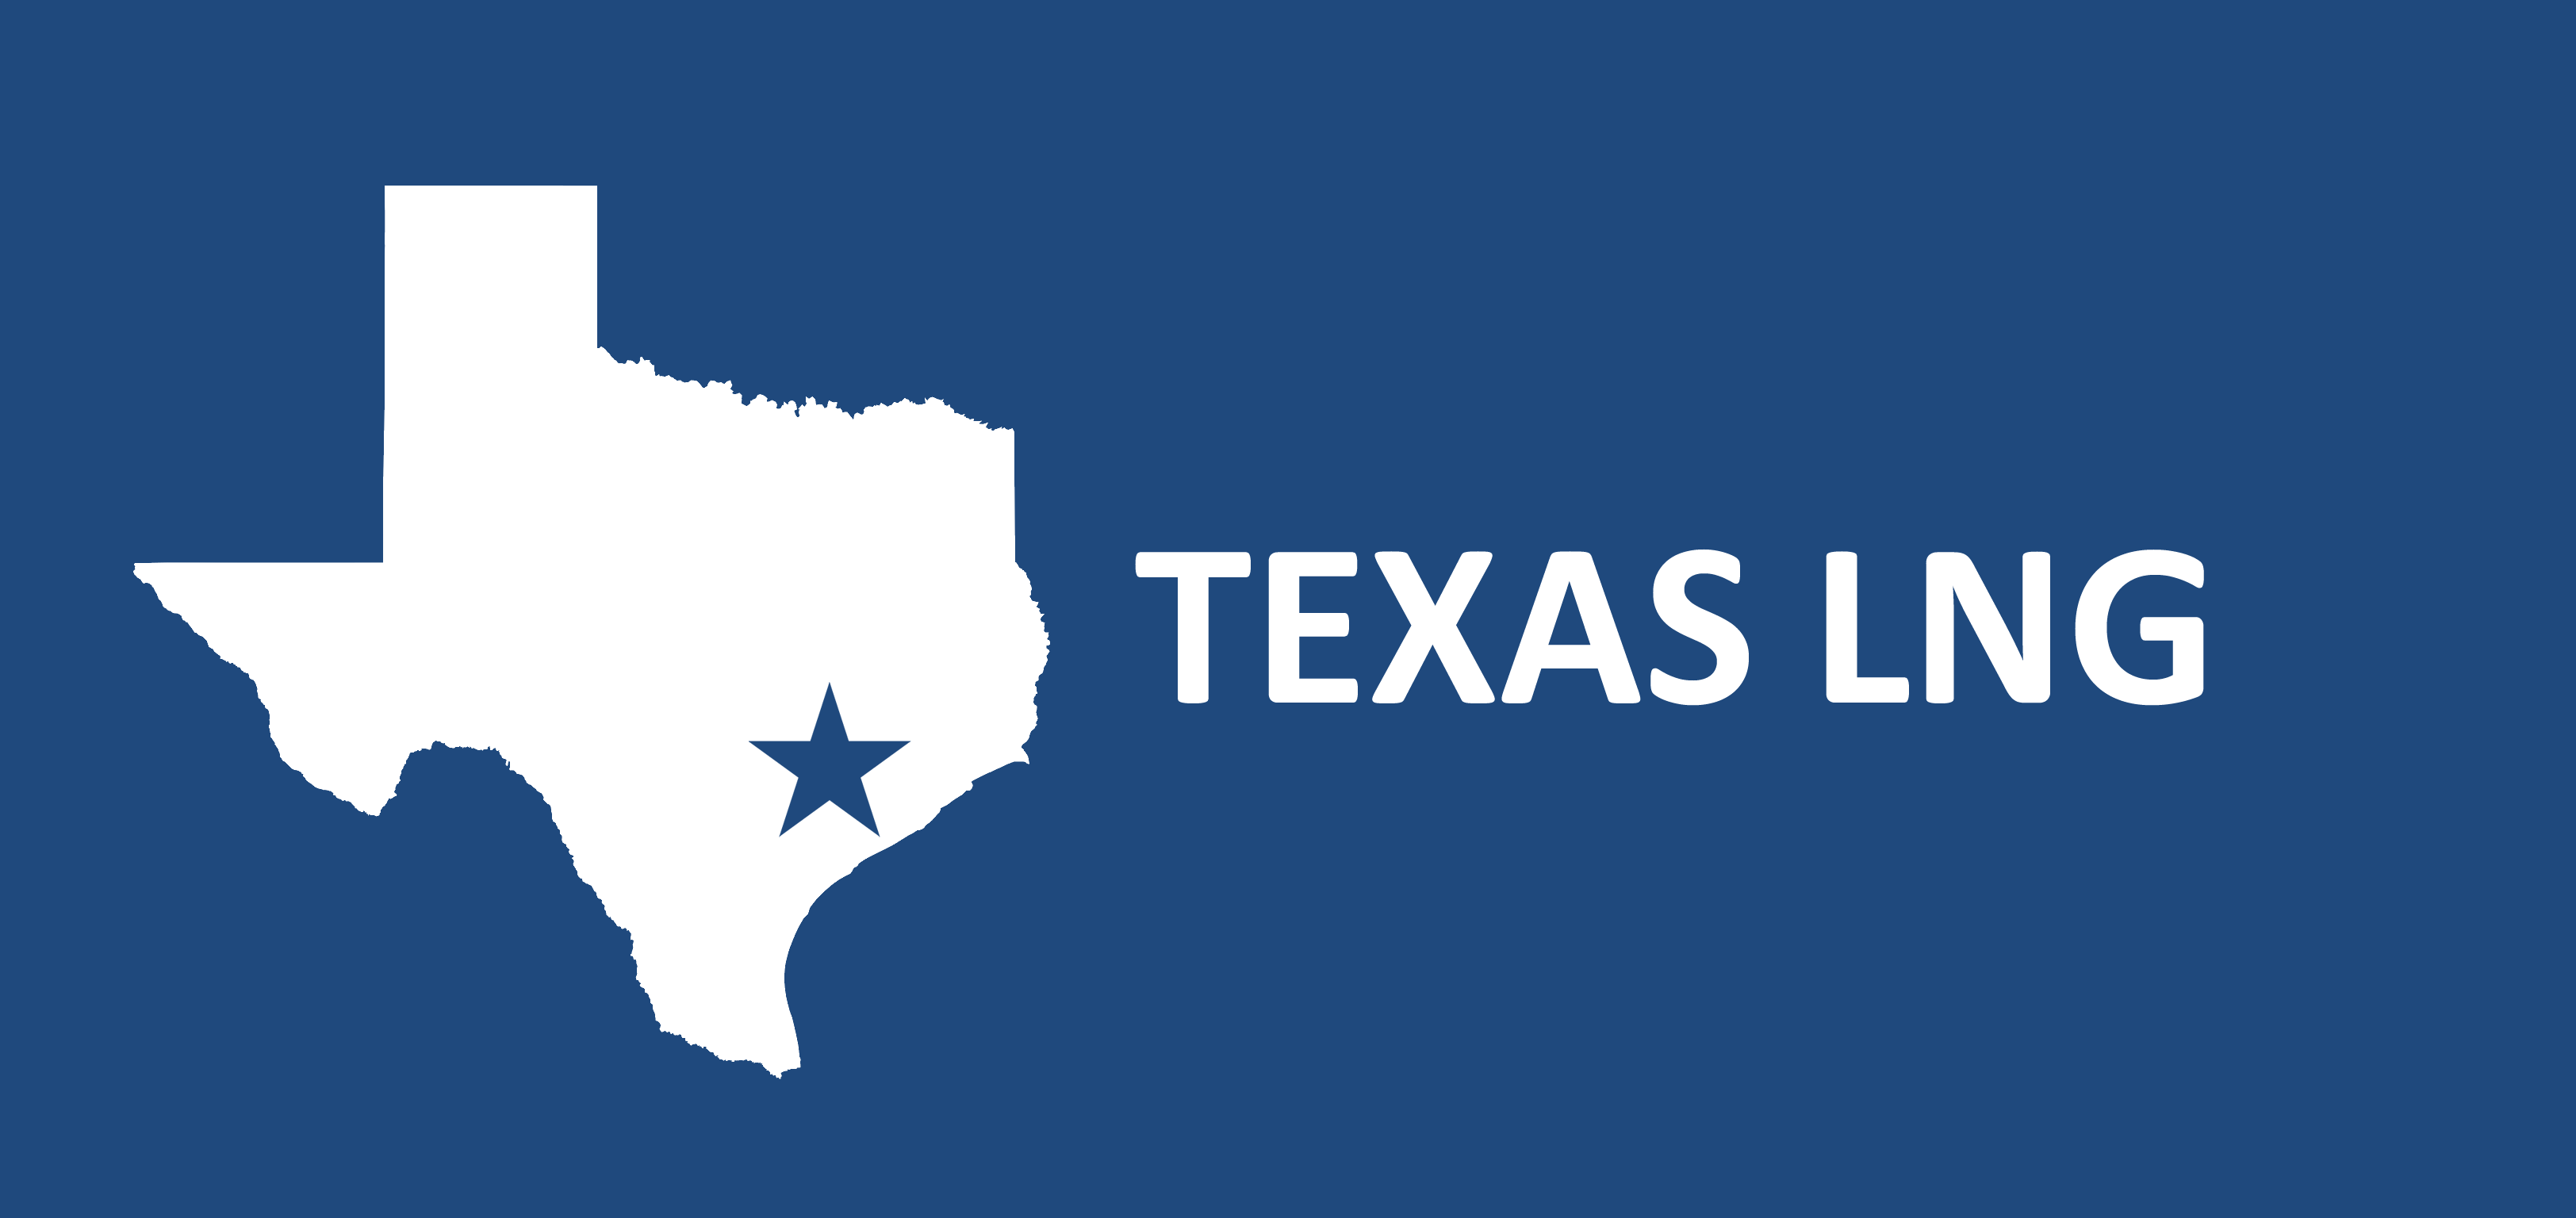 Texas LNG Receives United States Federal Energy Regulatory Commission Draft Environmental Impact Statement (Correction)